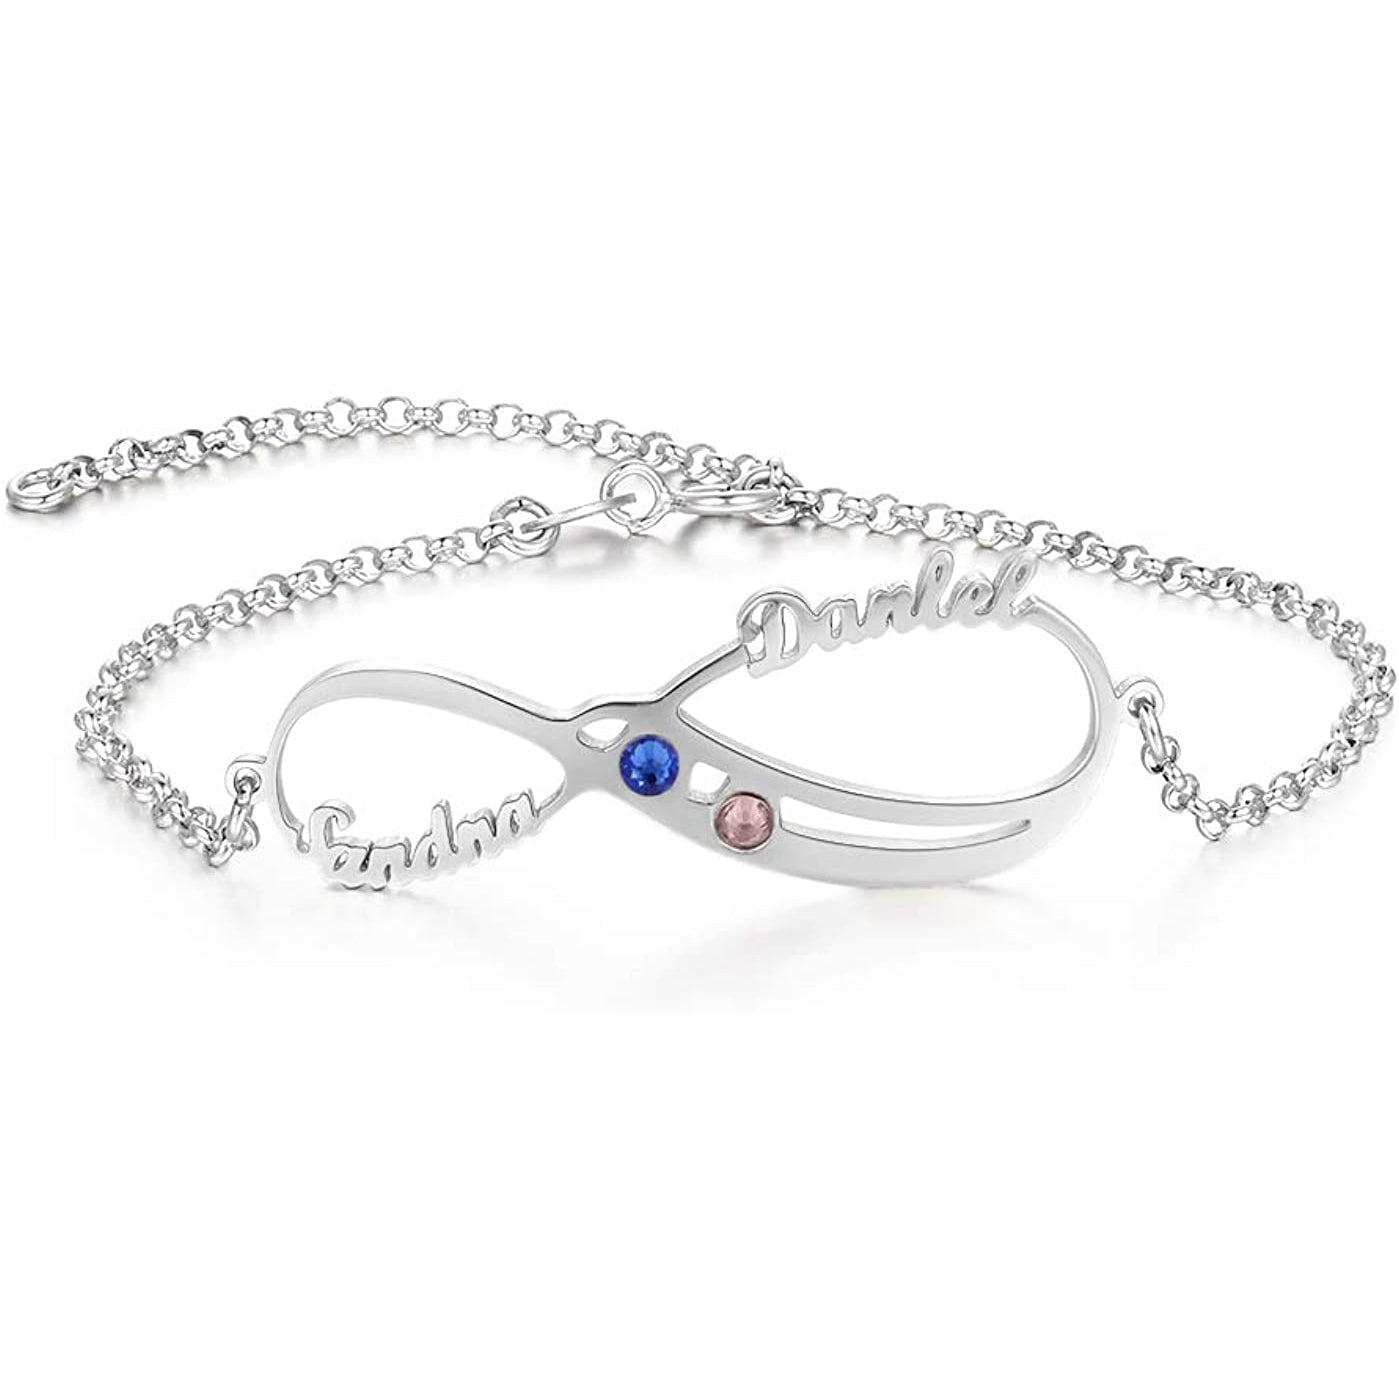 925 Sterling Silver Personalized Infinity Anklet With Birthstone - onlyone